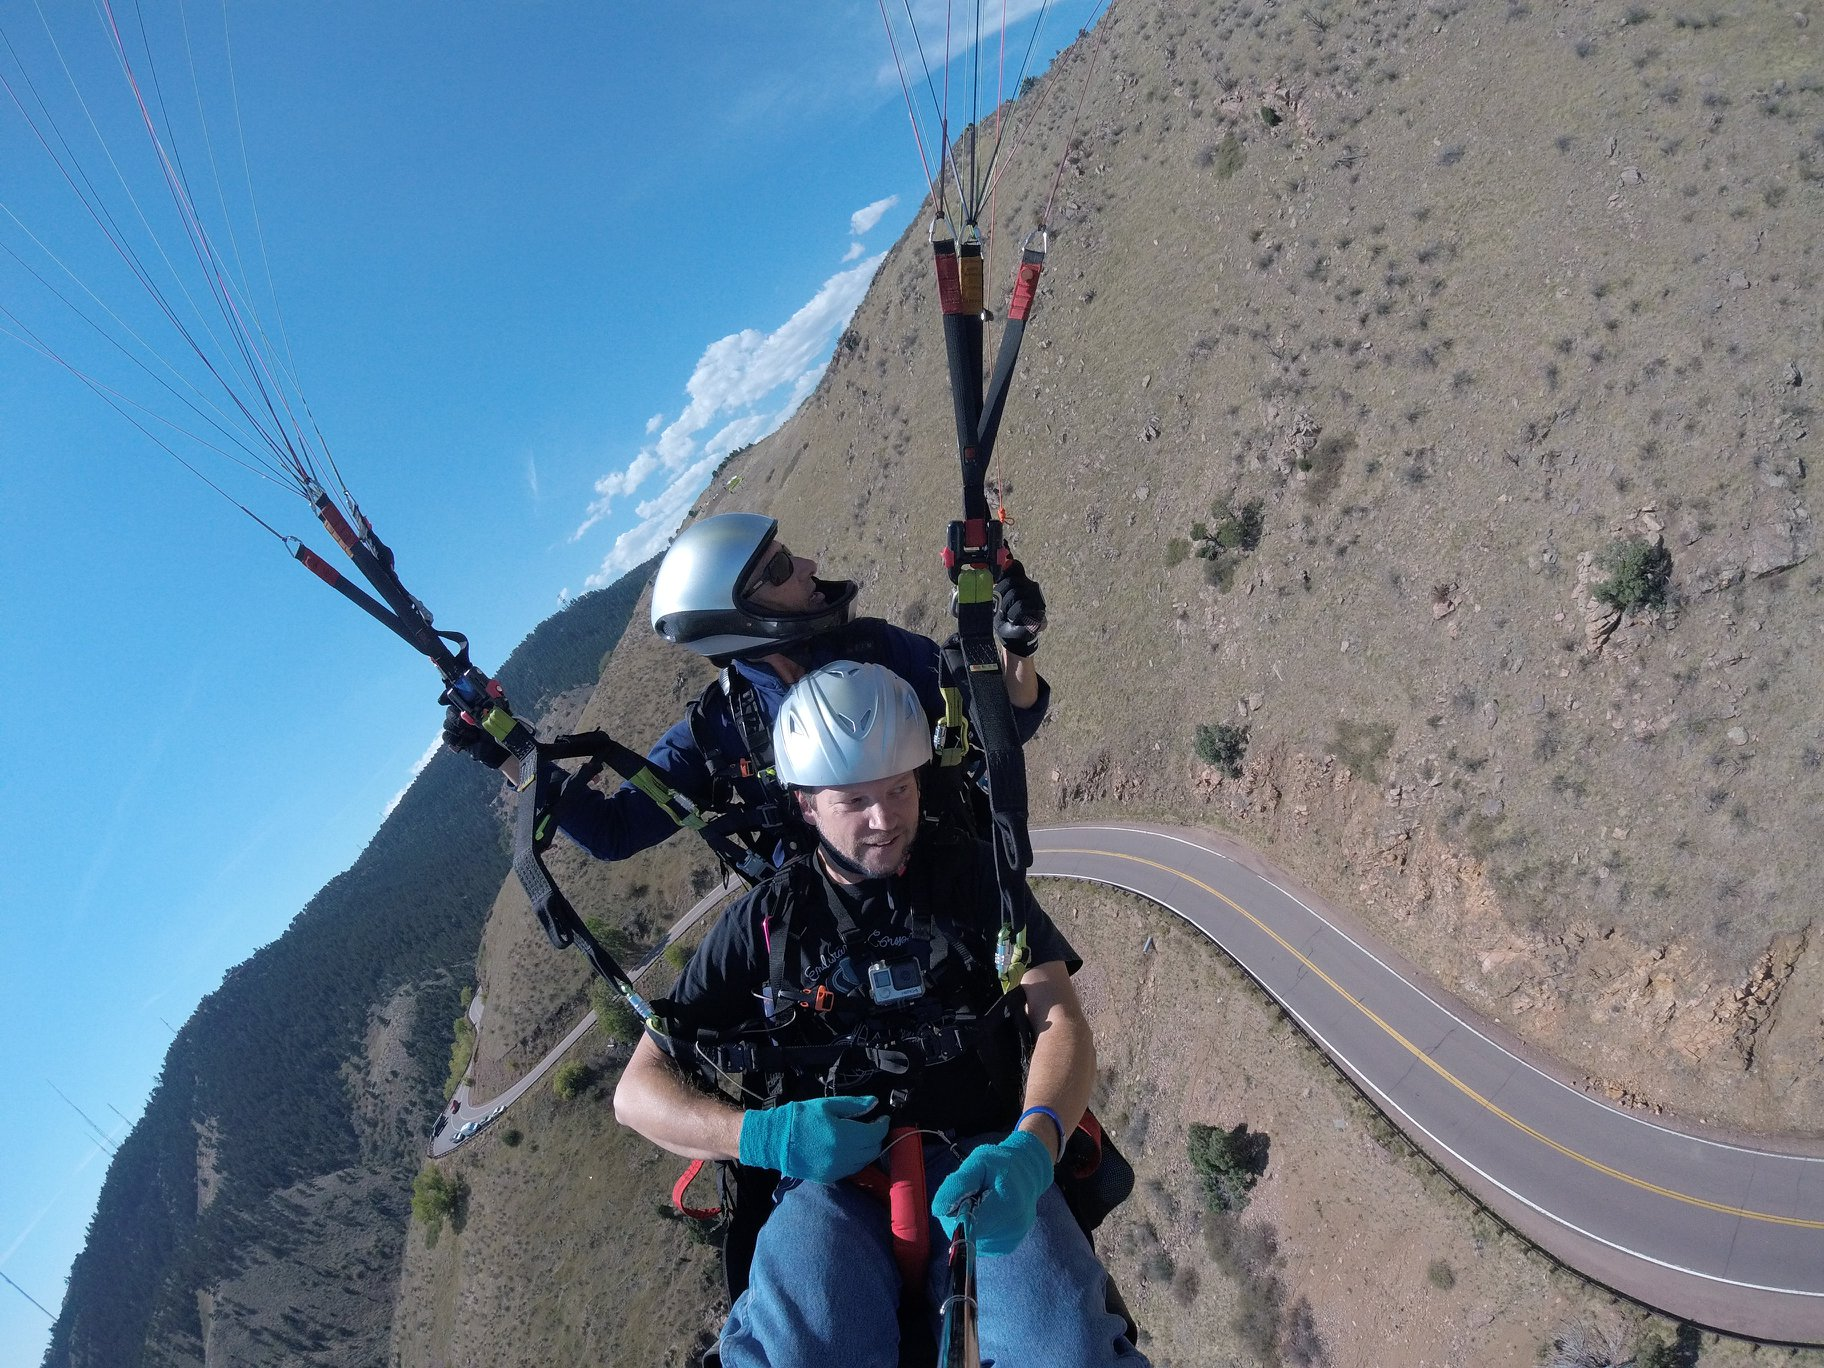 09 - Paragliding off Lookout Mountain.jpg